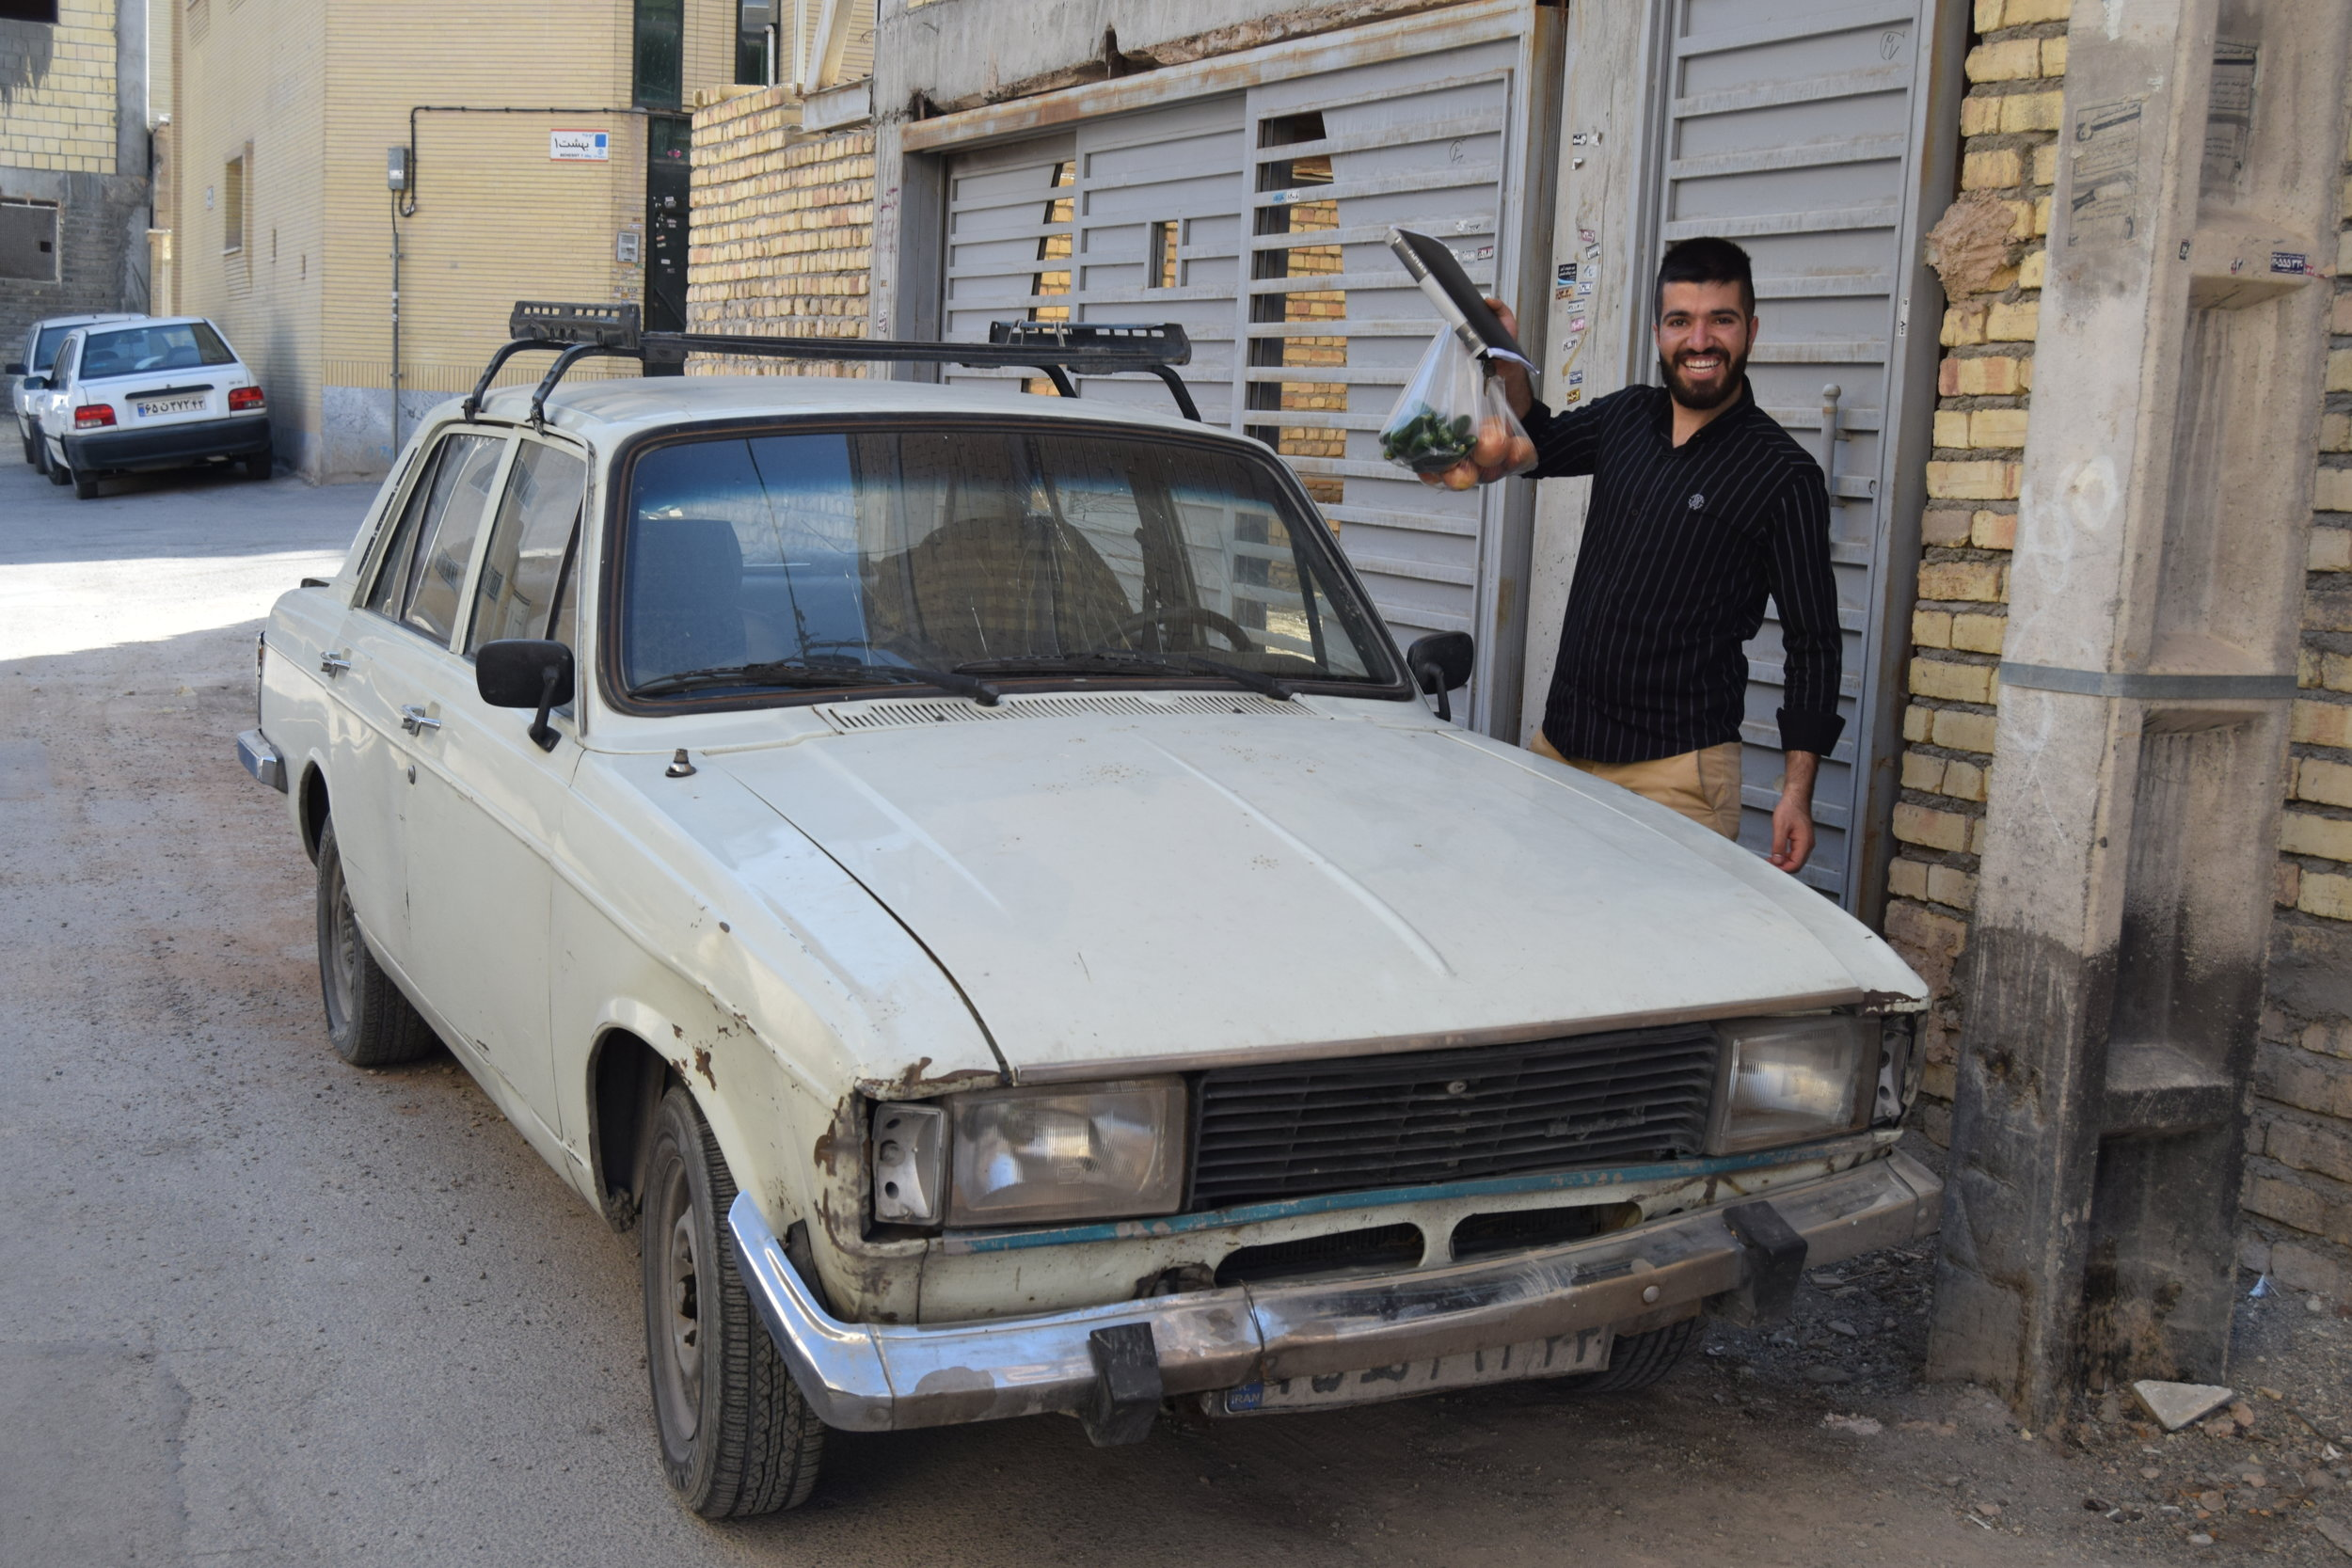 This young man showed me around Isfahan, and brought me home for dinner! He was very proud of his car by the way.